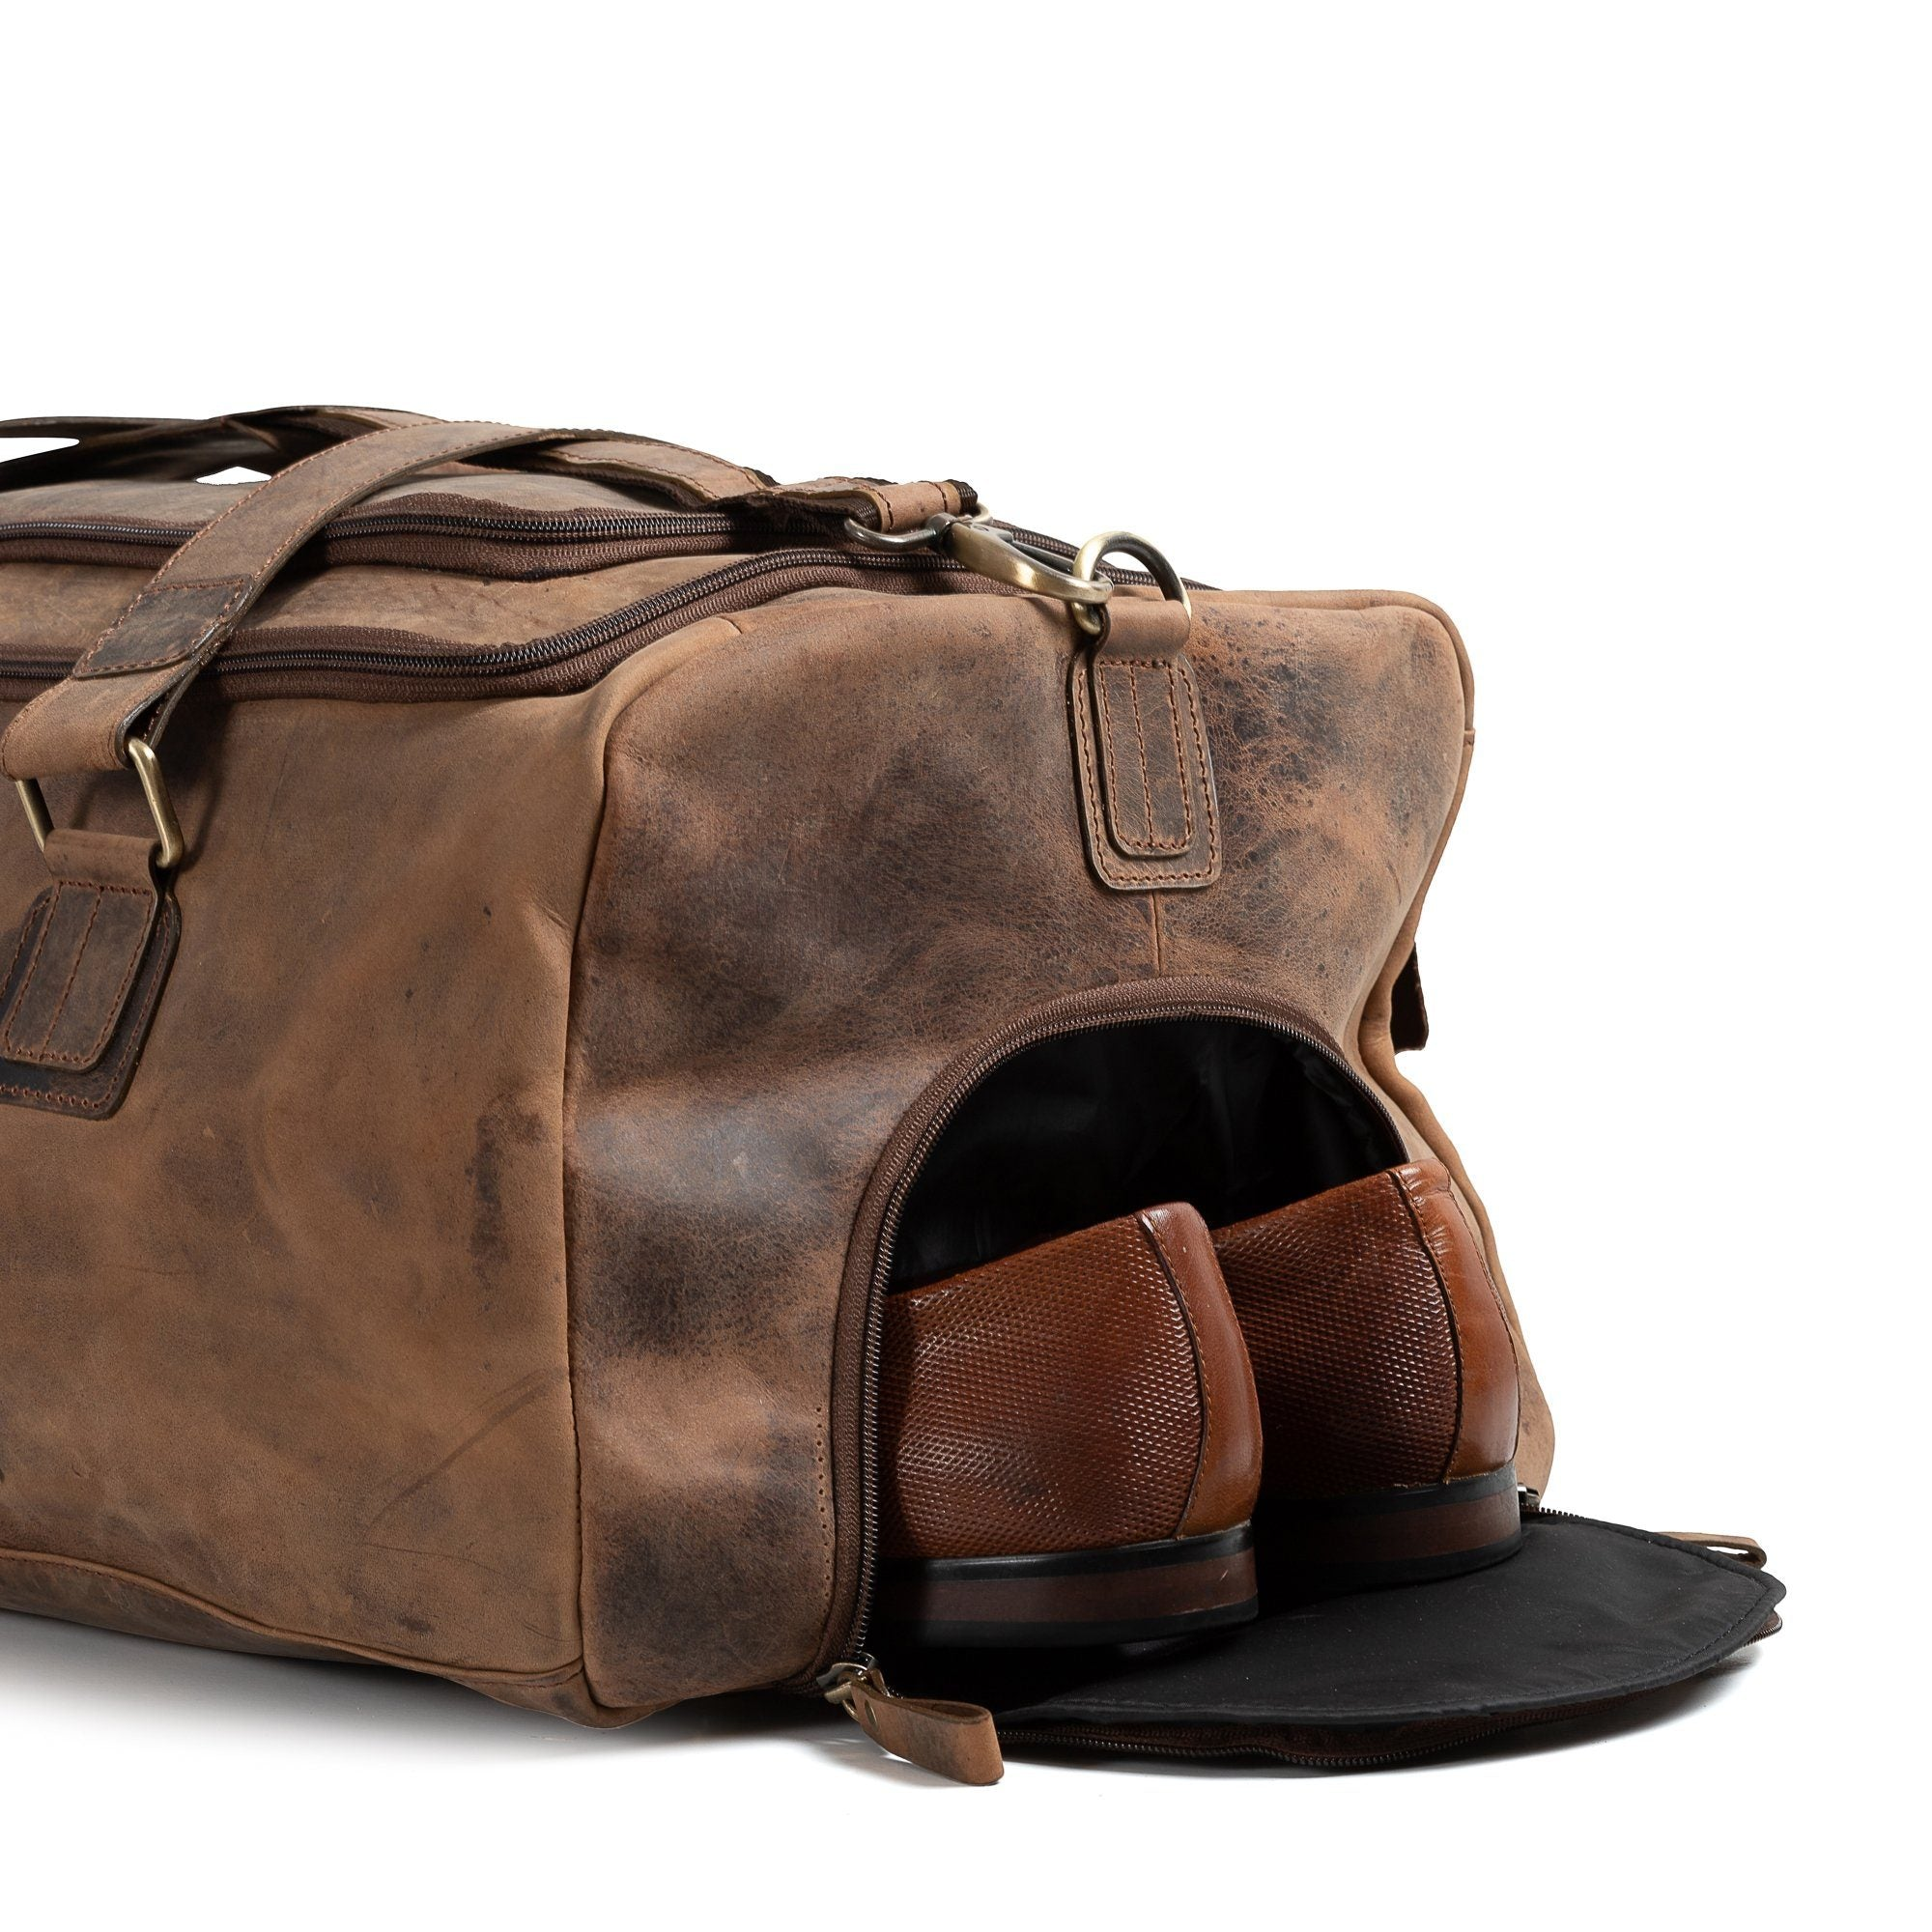 Vintage Leather Texas Duffle